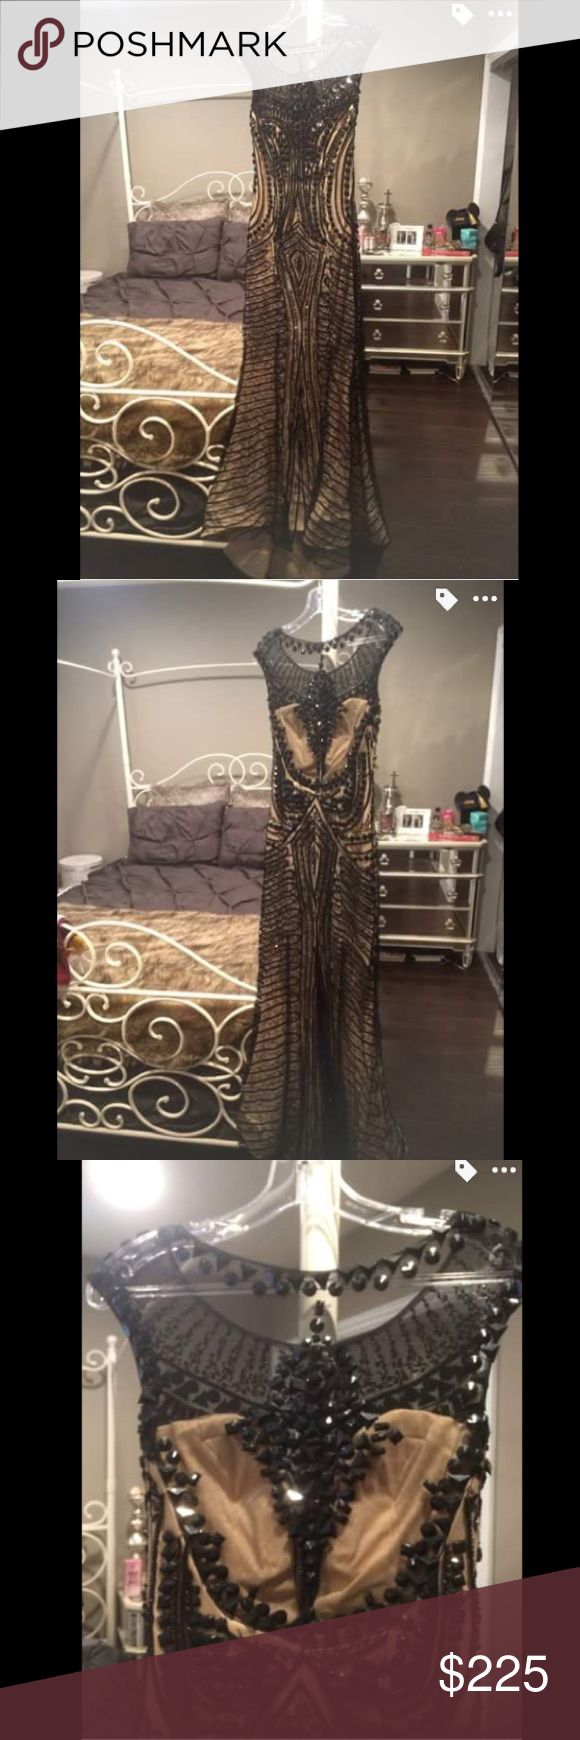 Black and nude ball gown/ prom dress Black and nude ball gown/ prom dress full beaded with black rhinestones and beads, sheer beaded back white a slight train in the back. Open to any offers💋 Dresses Prom